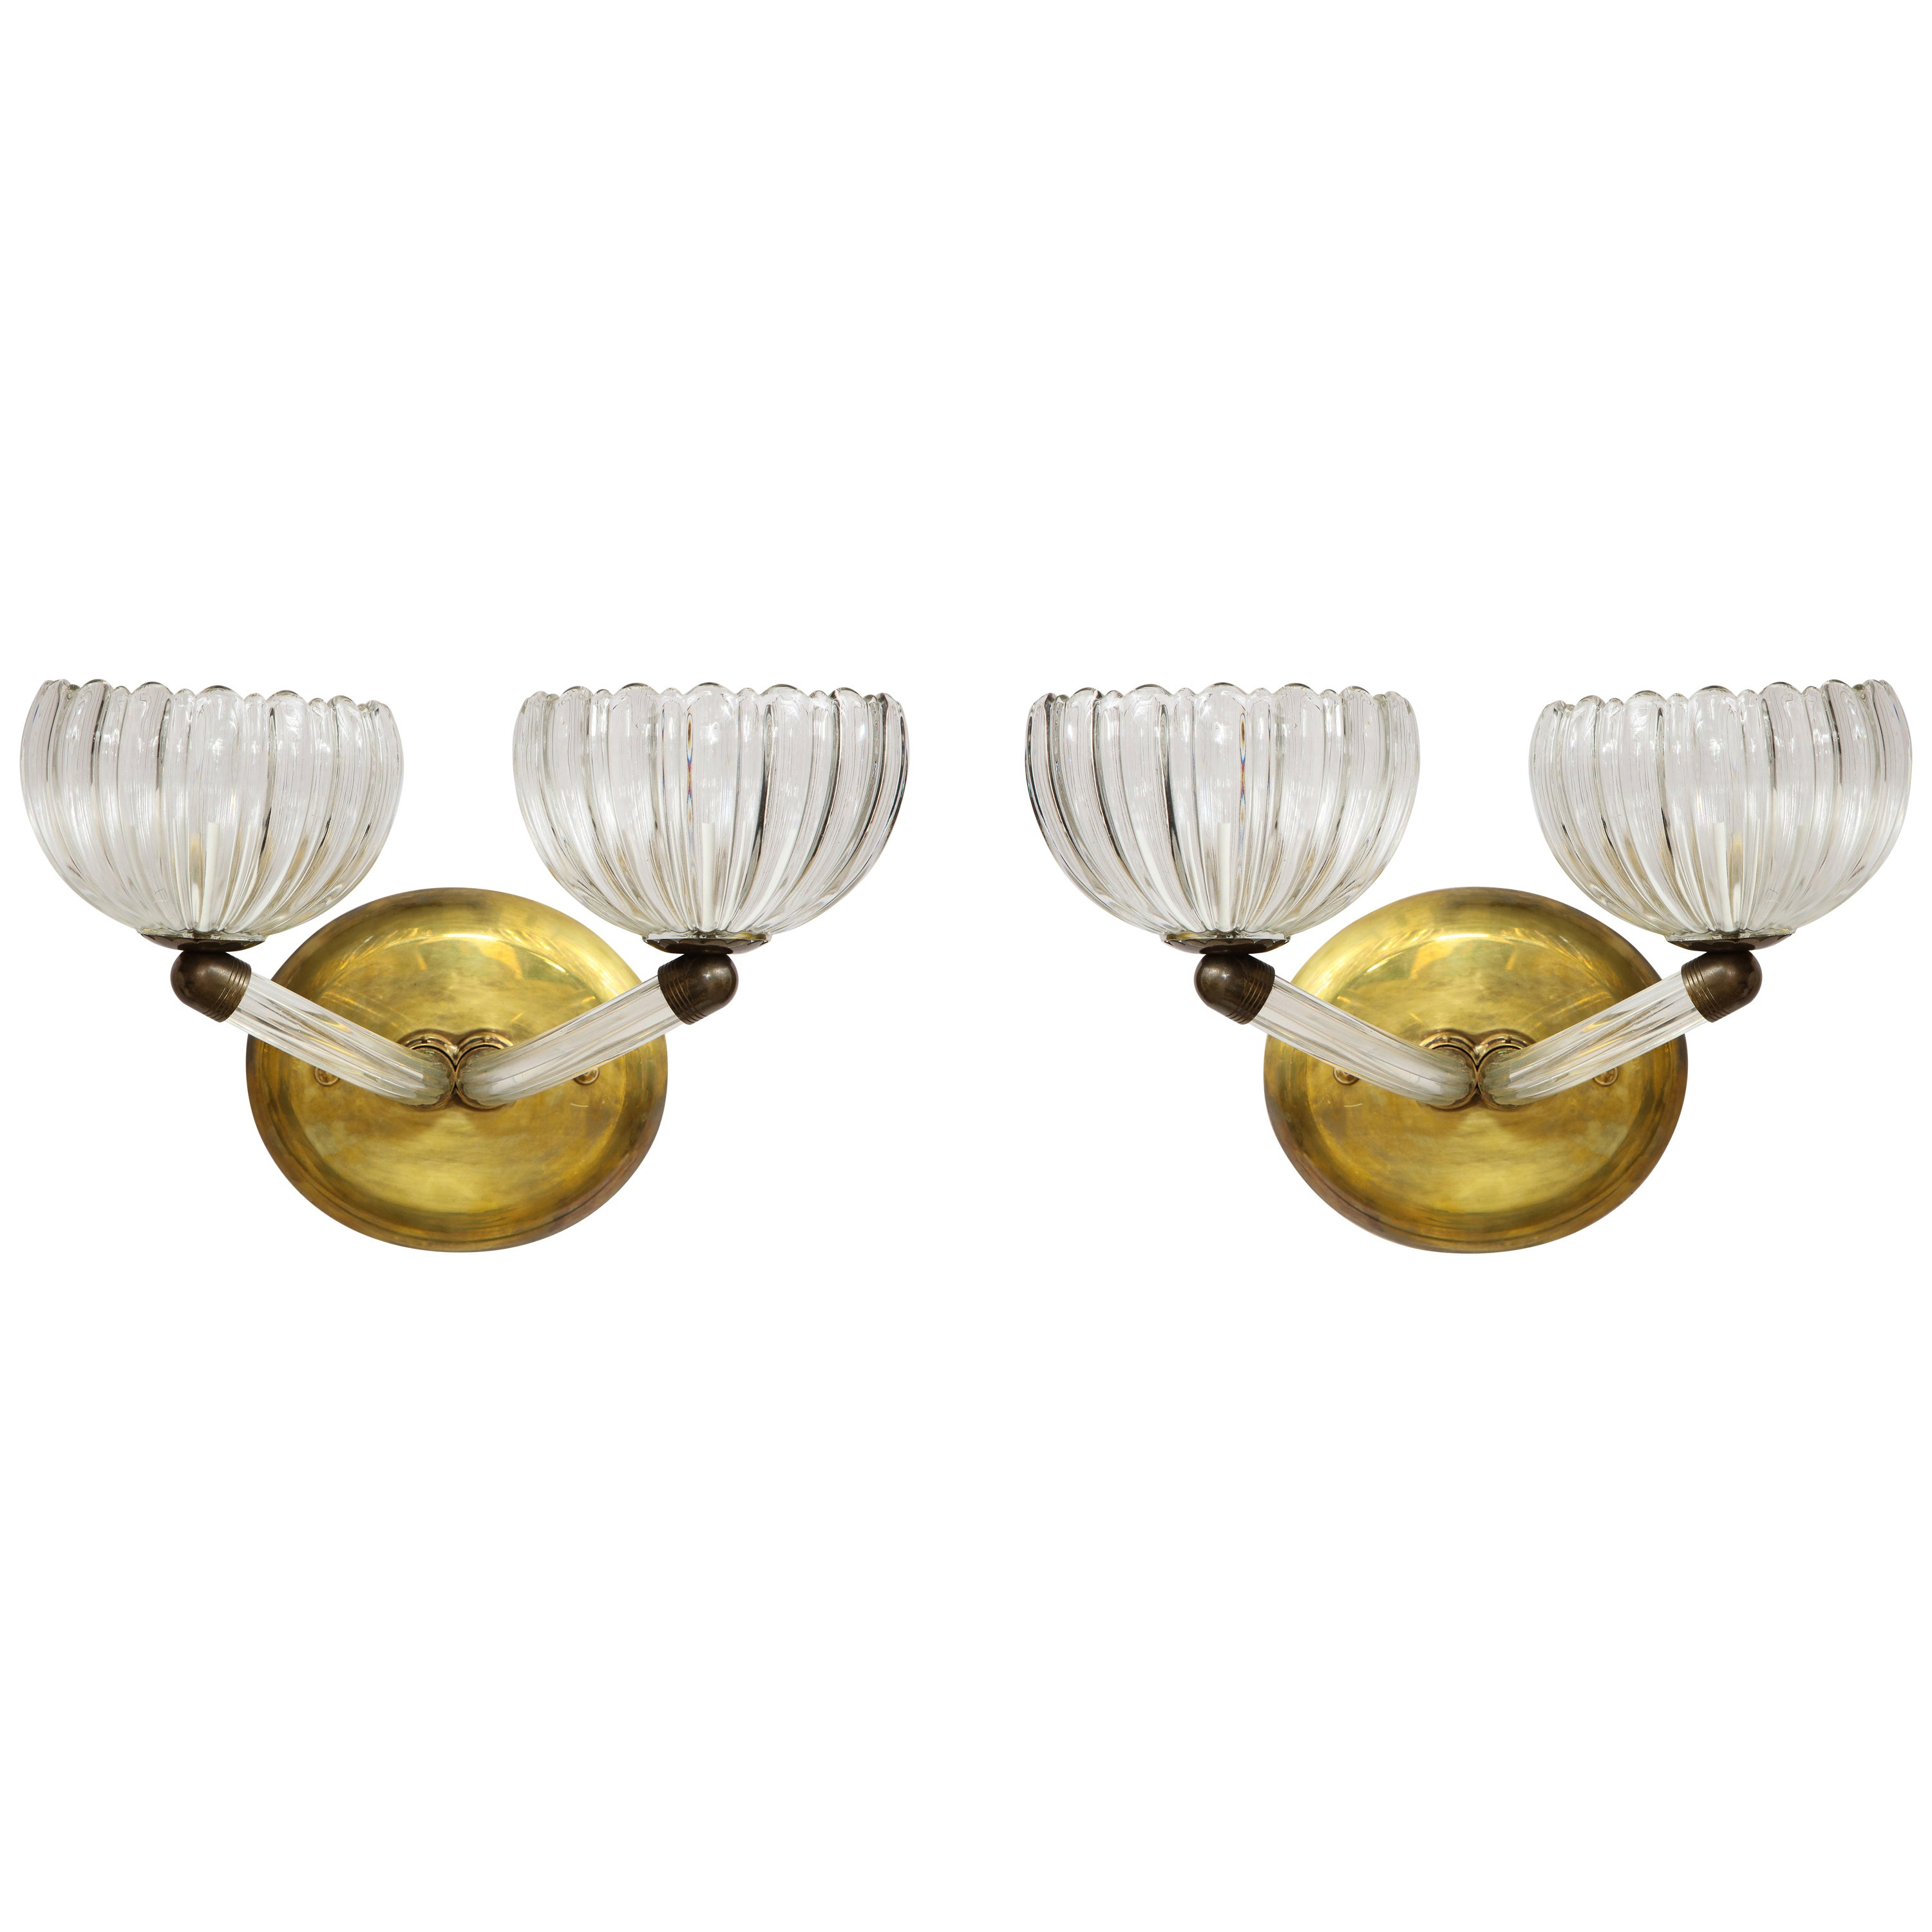 Pair of Italian Murano Glass and Brass Wall Sconces